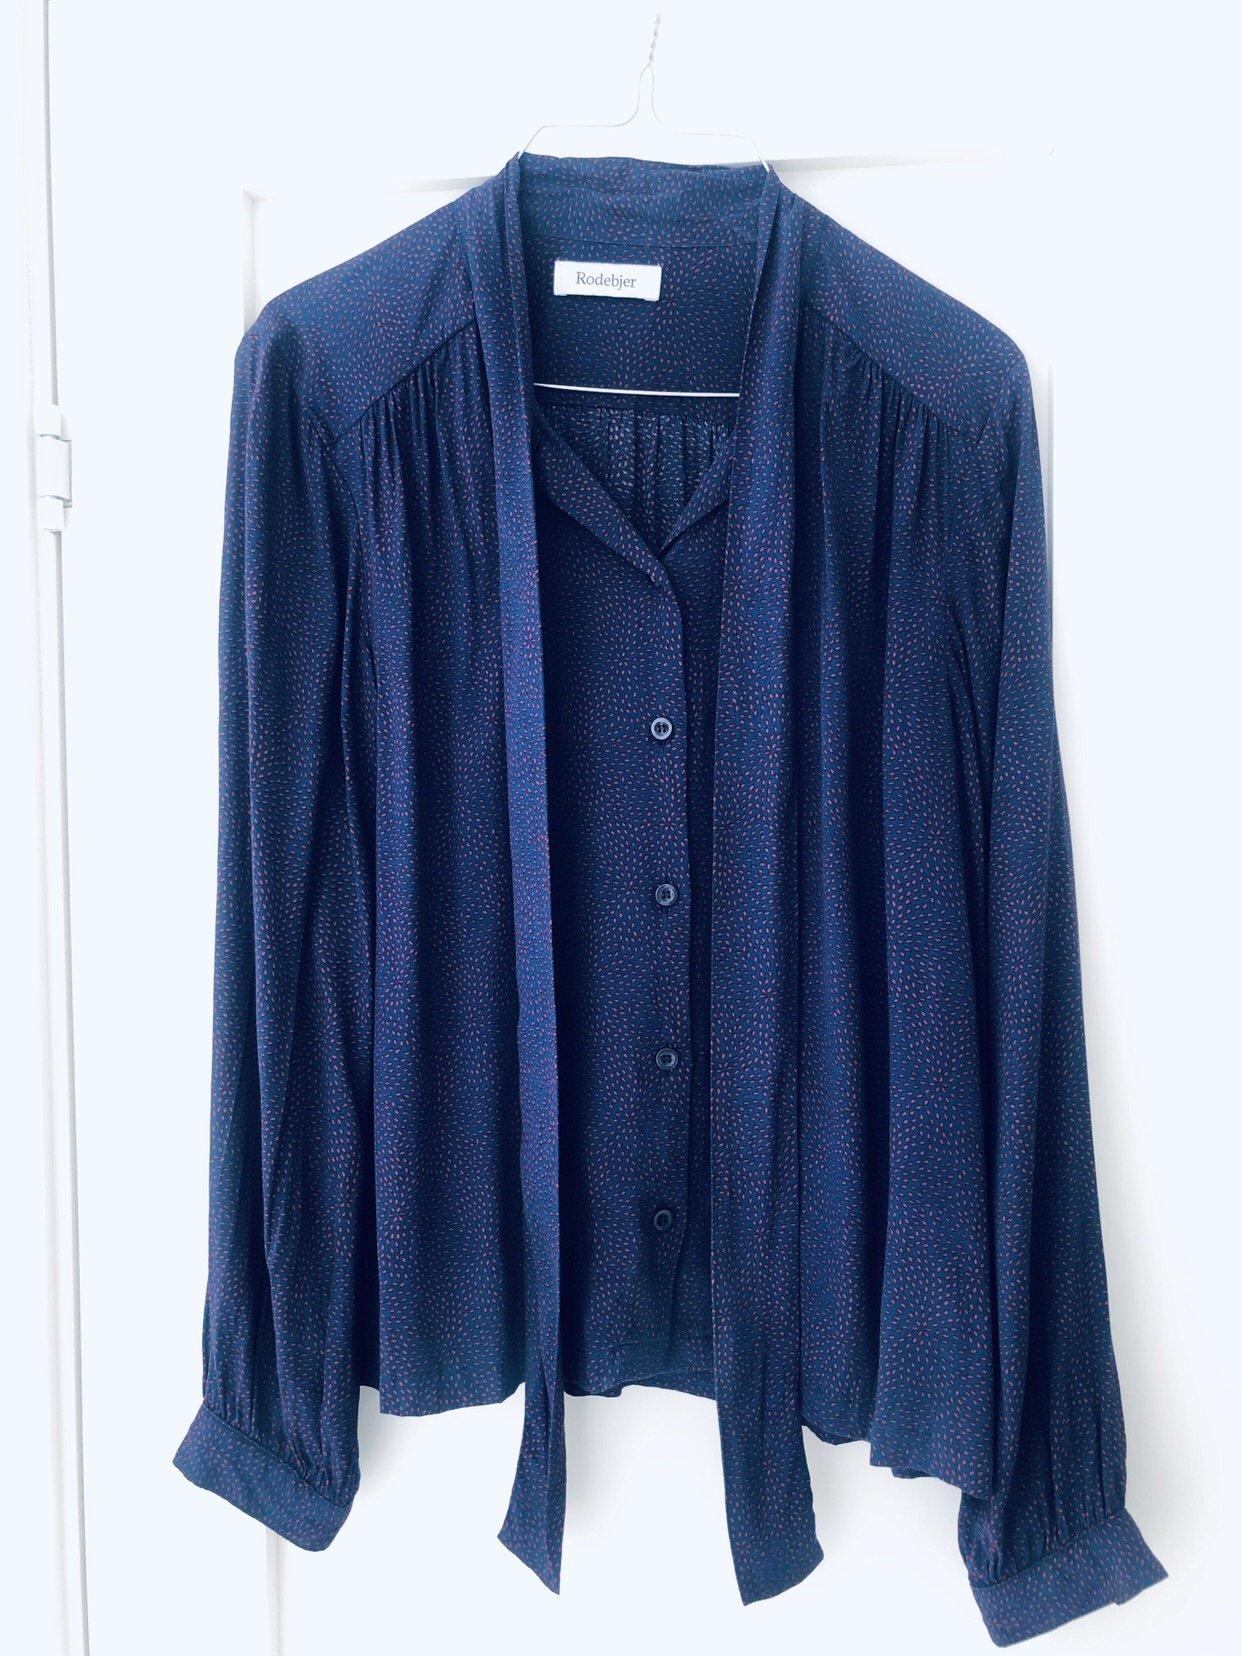 Rodebjer blus